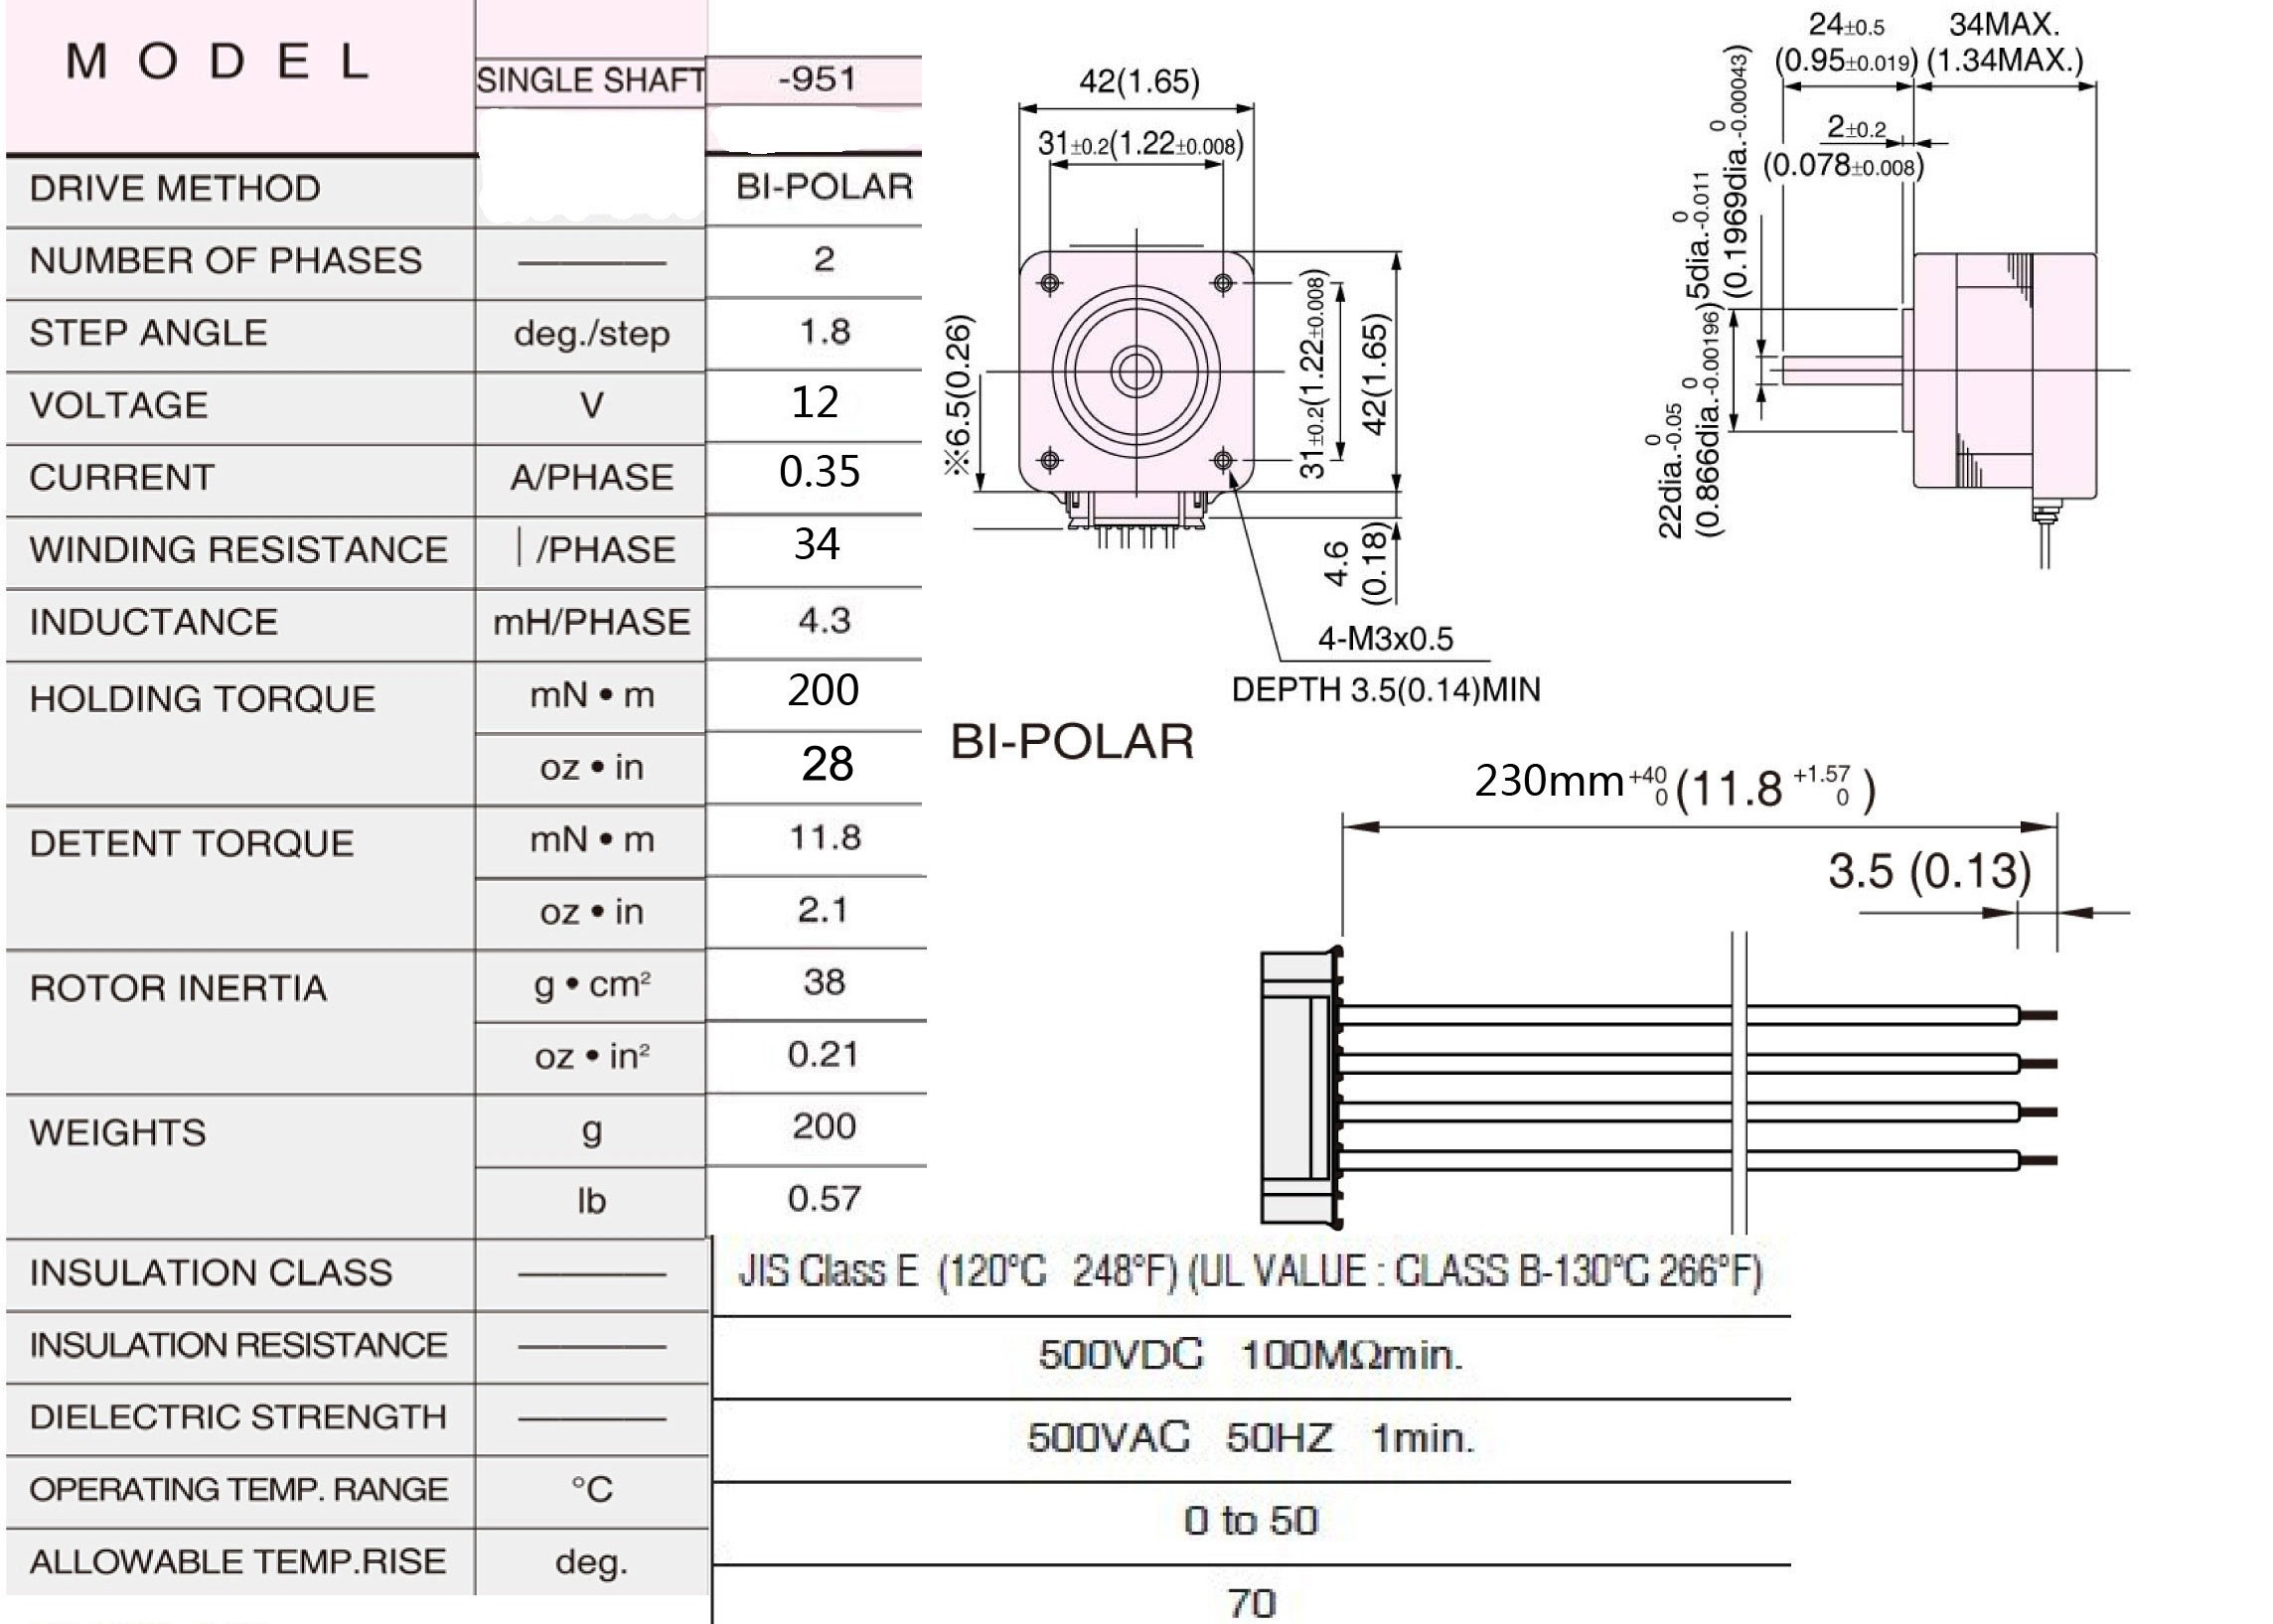 Stepper Motor Wiring Diagram Interfacing With Pic Controlling Bipolar Motors The Pic16f84 Schematic Circuit Diy Peristaltic Pump Chips And Tips Of